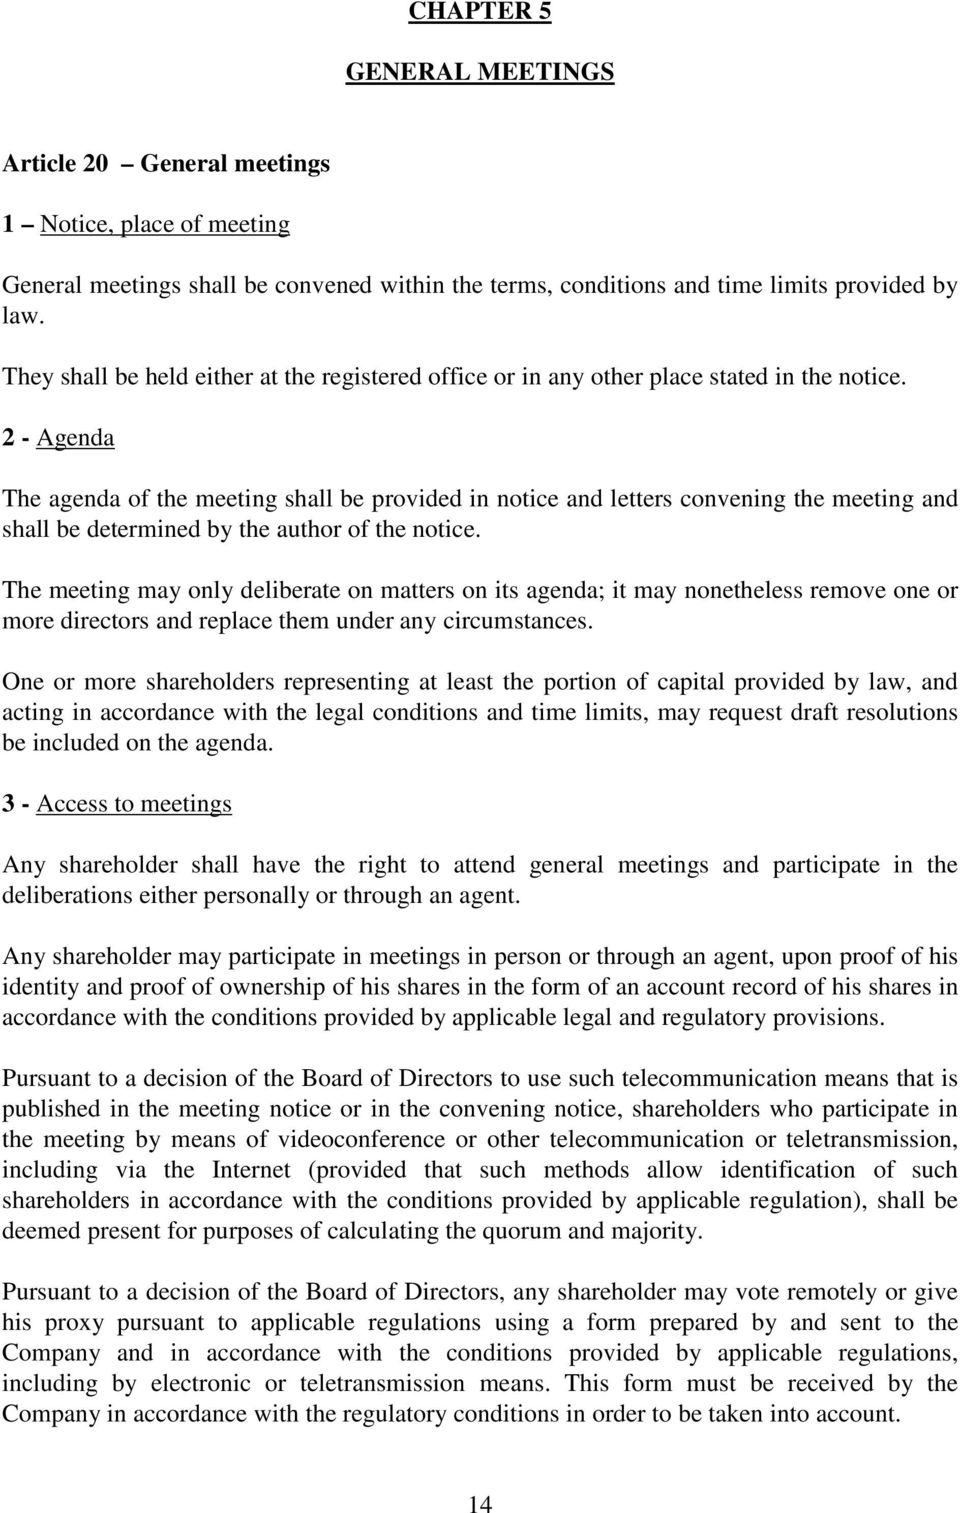 2 - Agenda The agenda of the meeting shall be provided in notice and letters convening the meeting and shall be determined by the author of the notice.